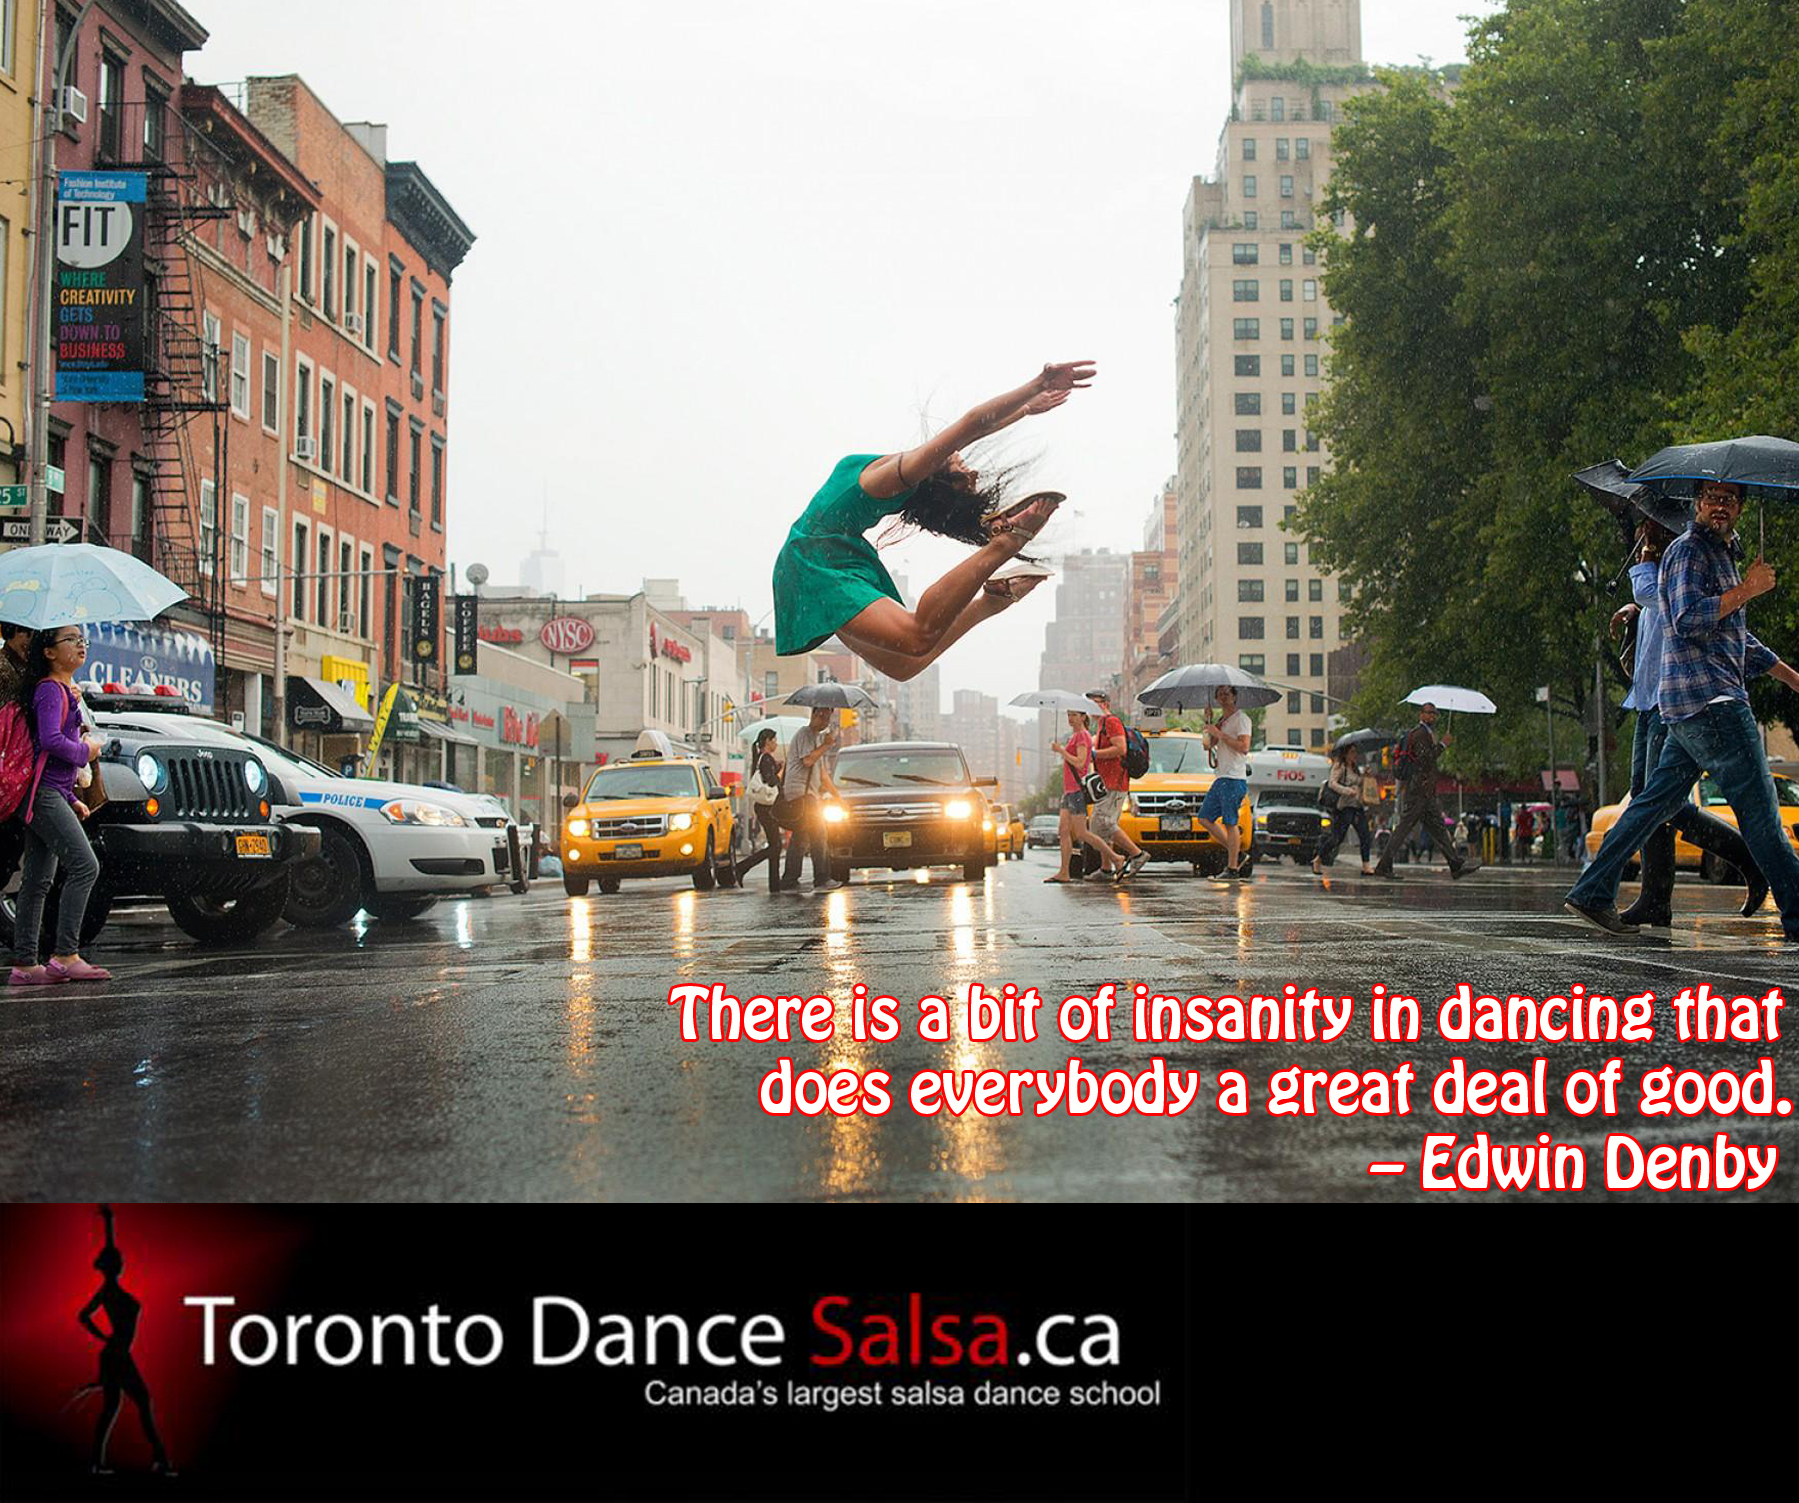 There is a bit of insanity in dancing that does everybody a great deal of good. – Edwin Denby